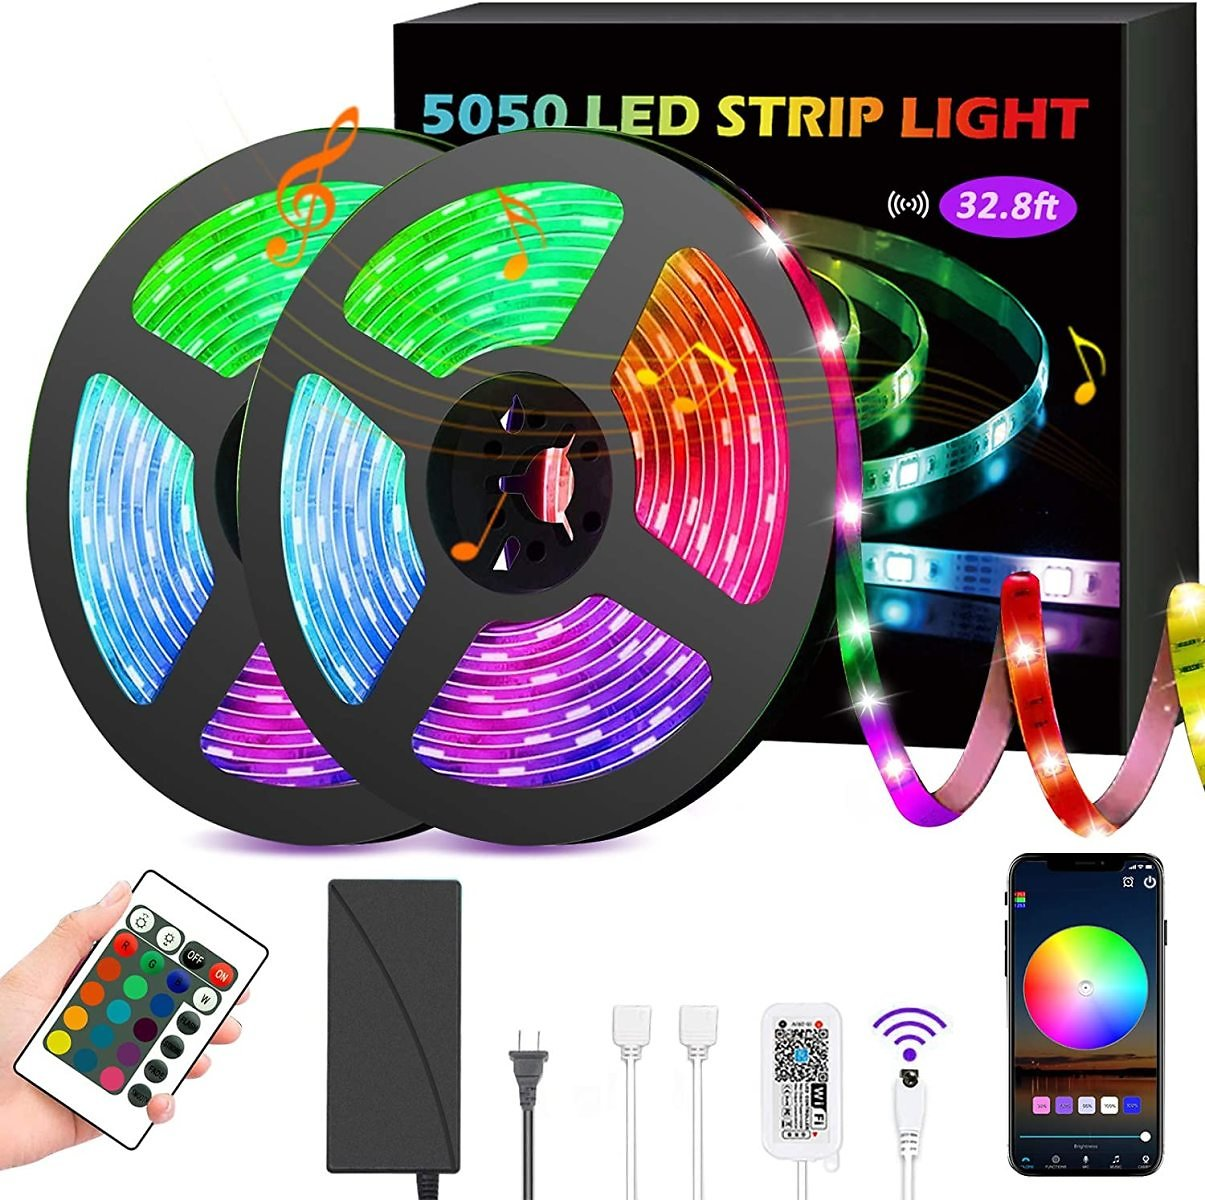 GSBLUNIE LED Strip Lights 32.8ft,Smart Lights Strip Music Sync,RGB Color Changing Rope Lights,APP Control with Remote,5050 RGB L